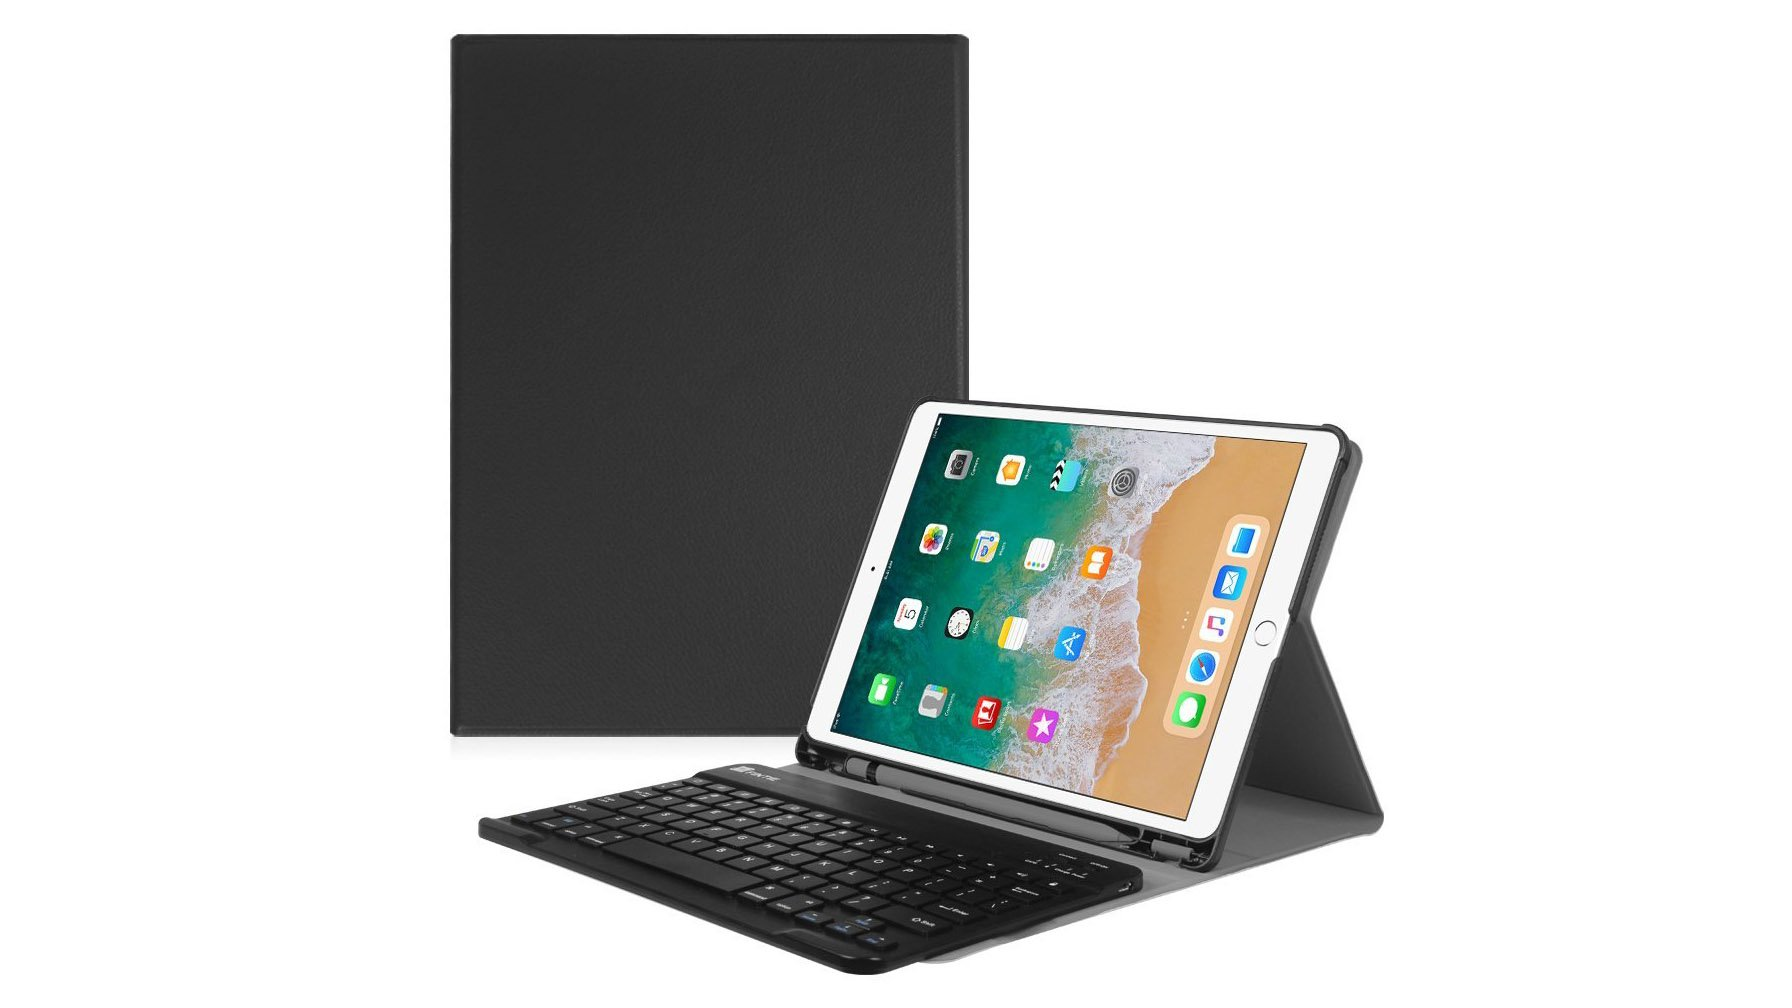 53f0100361 Let me make this clear from the start: this isn't a keyboard case. Rather,  for £26 you'll be getting an imitation-leather case for your iPad Air 3  alongside ...